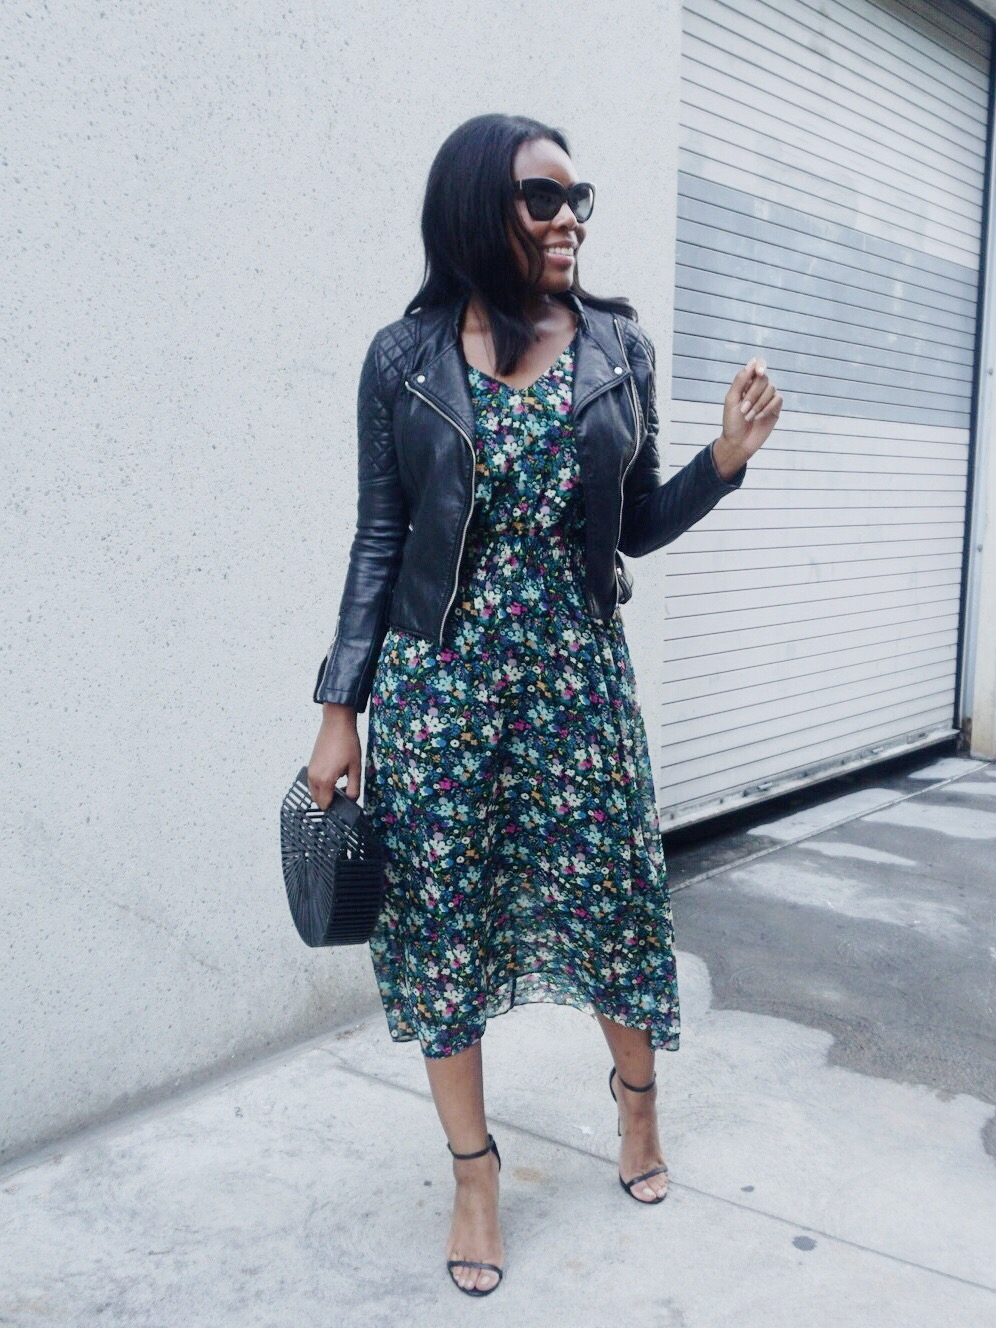 3 Must-Have Dresses for Spring - Le Fab Chic